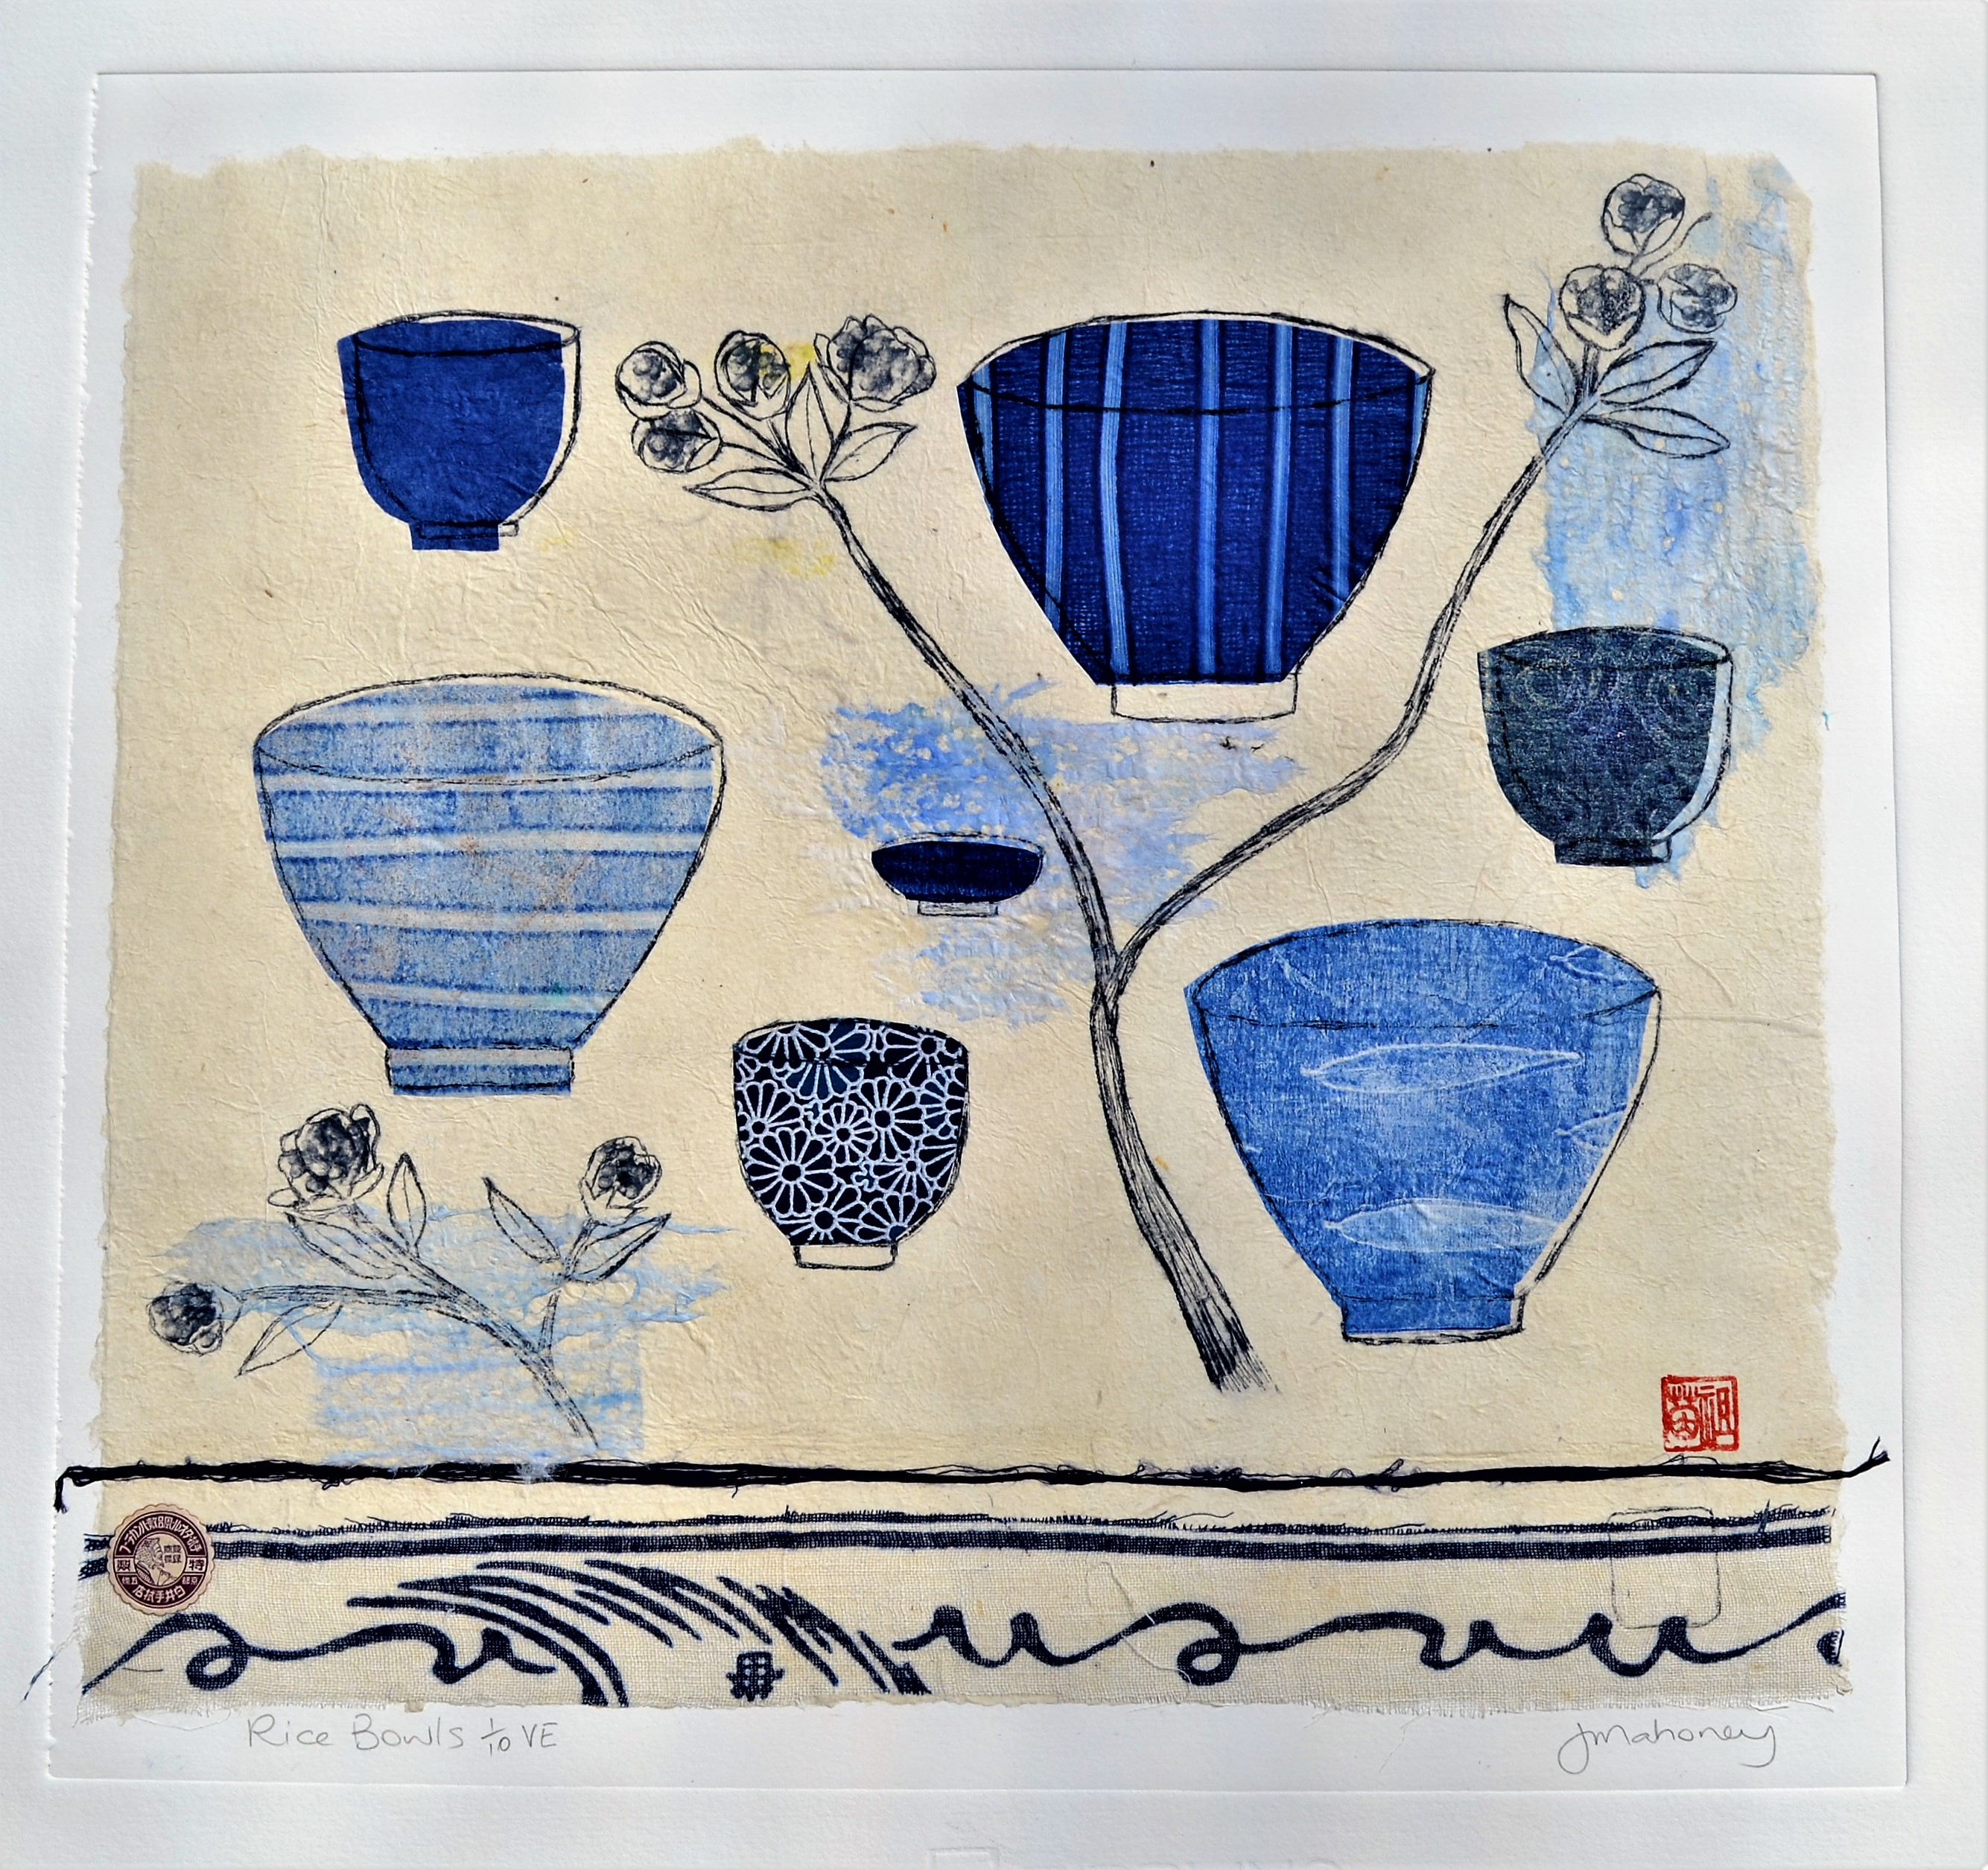 Rice Bowls 1/10 VE Dry Point & Chine Colle Print Framed 600 mm W x 590 mm H